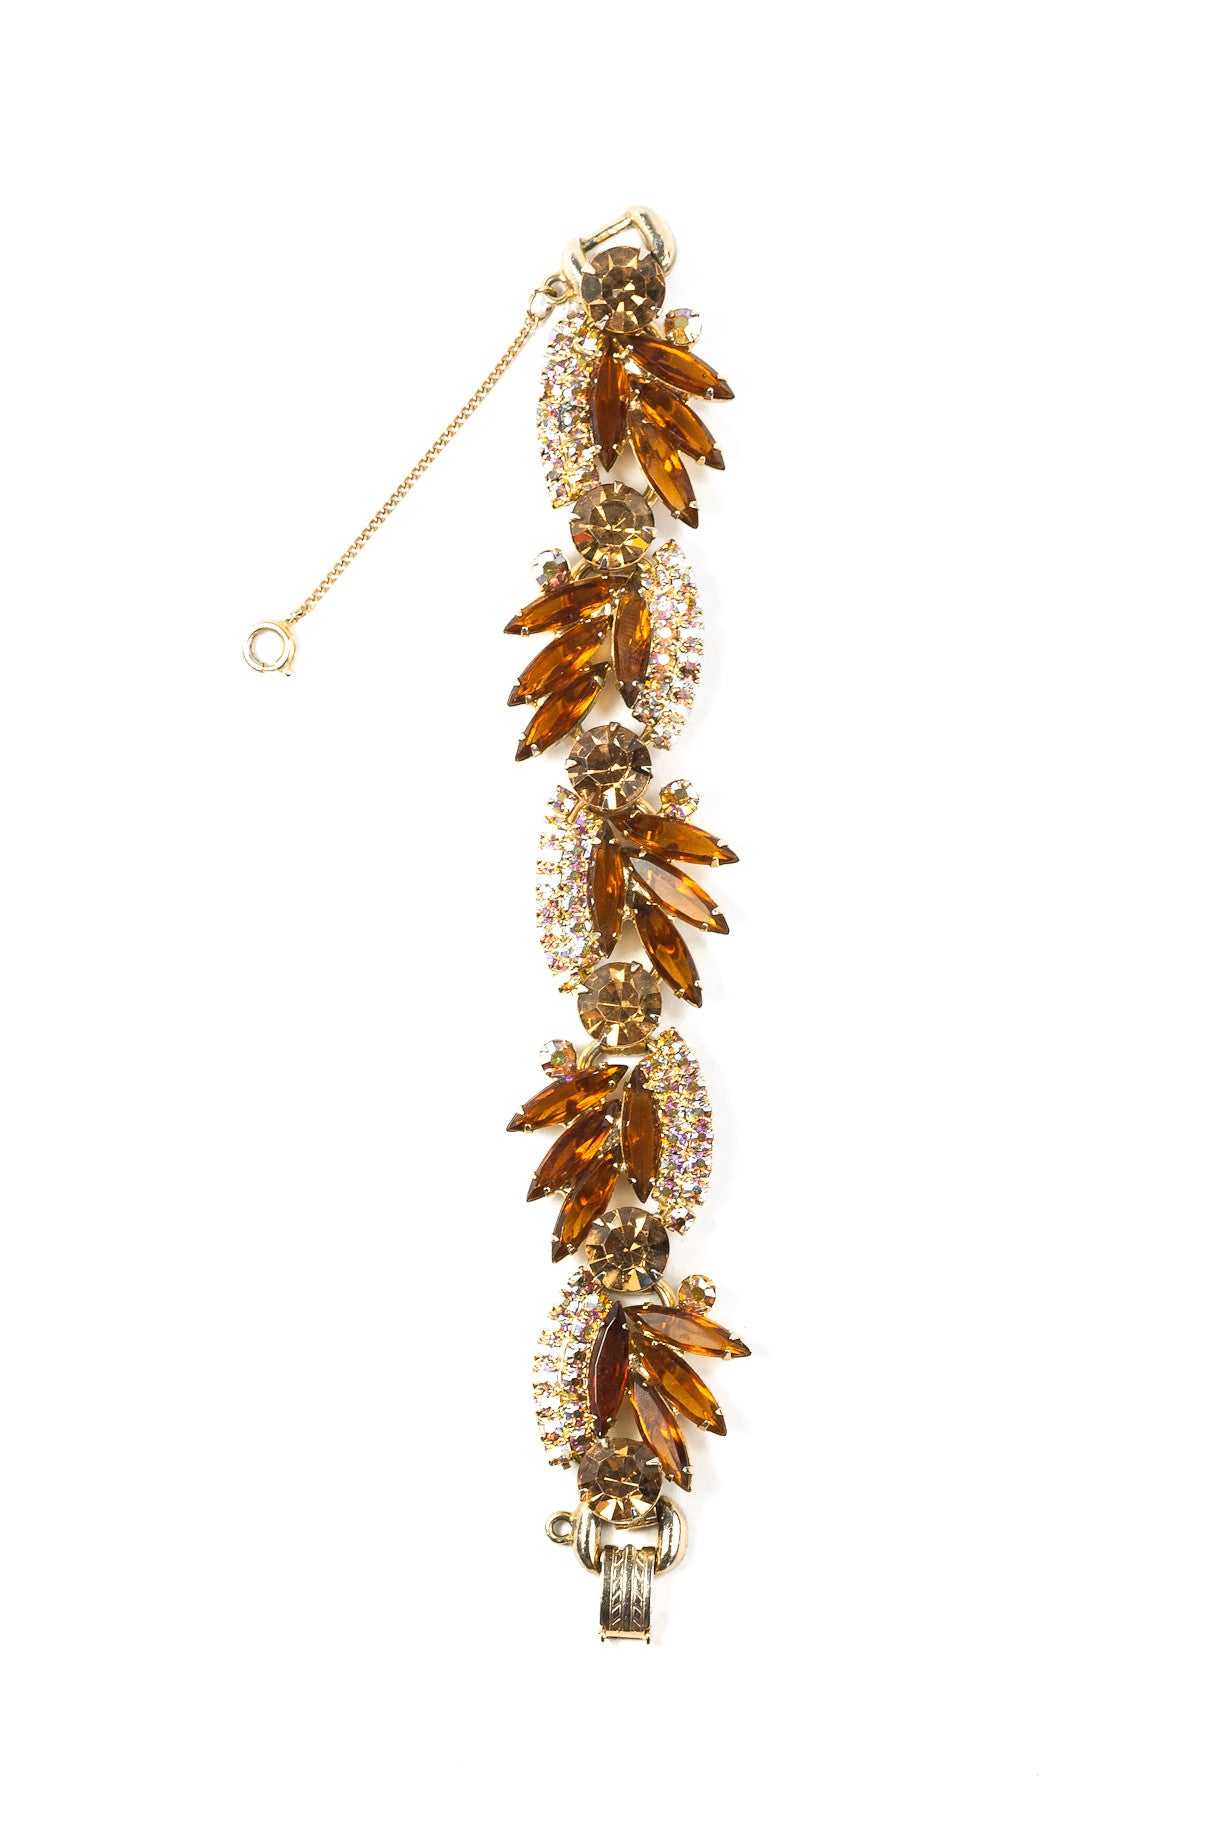 60's__Juliana__Statement Amber Rhinestone Bracelet